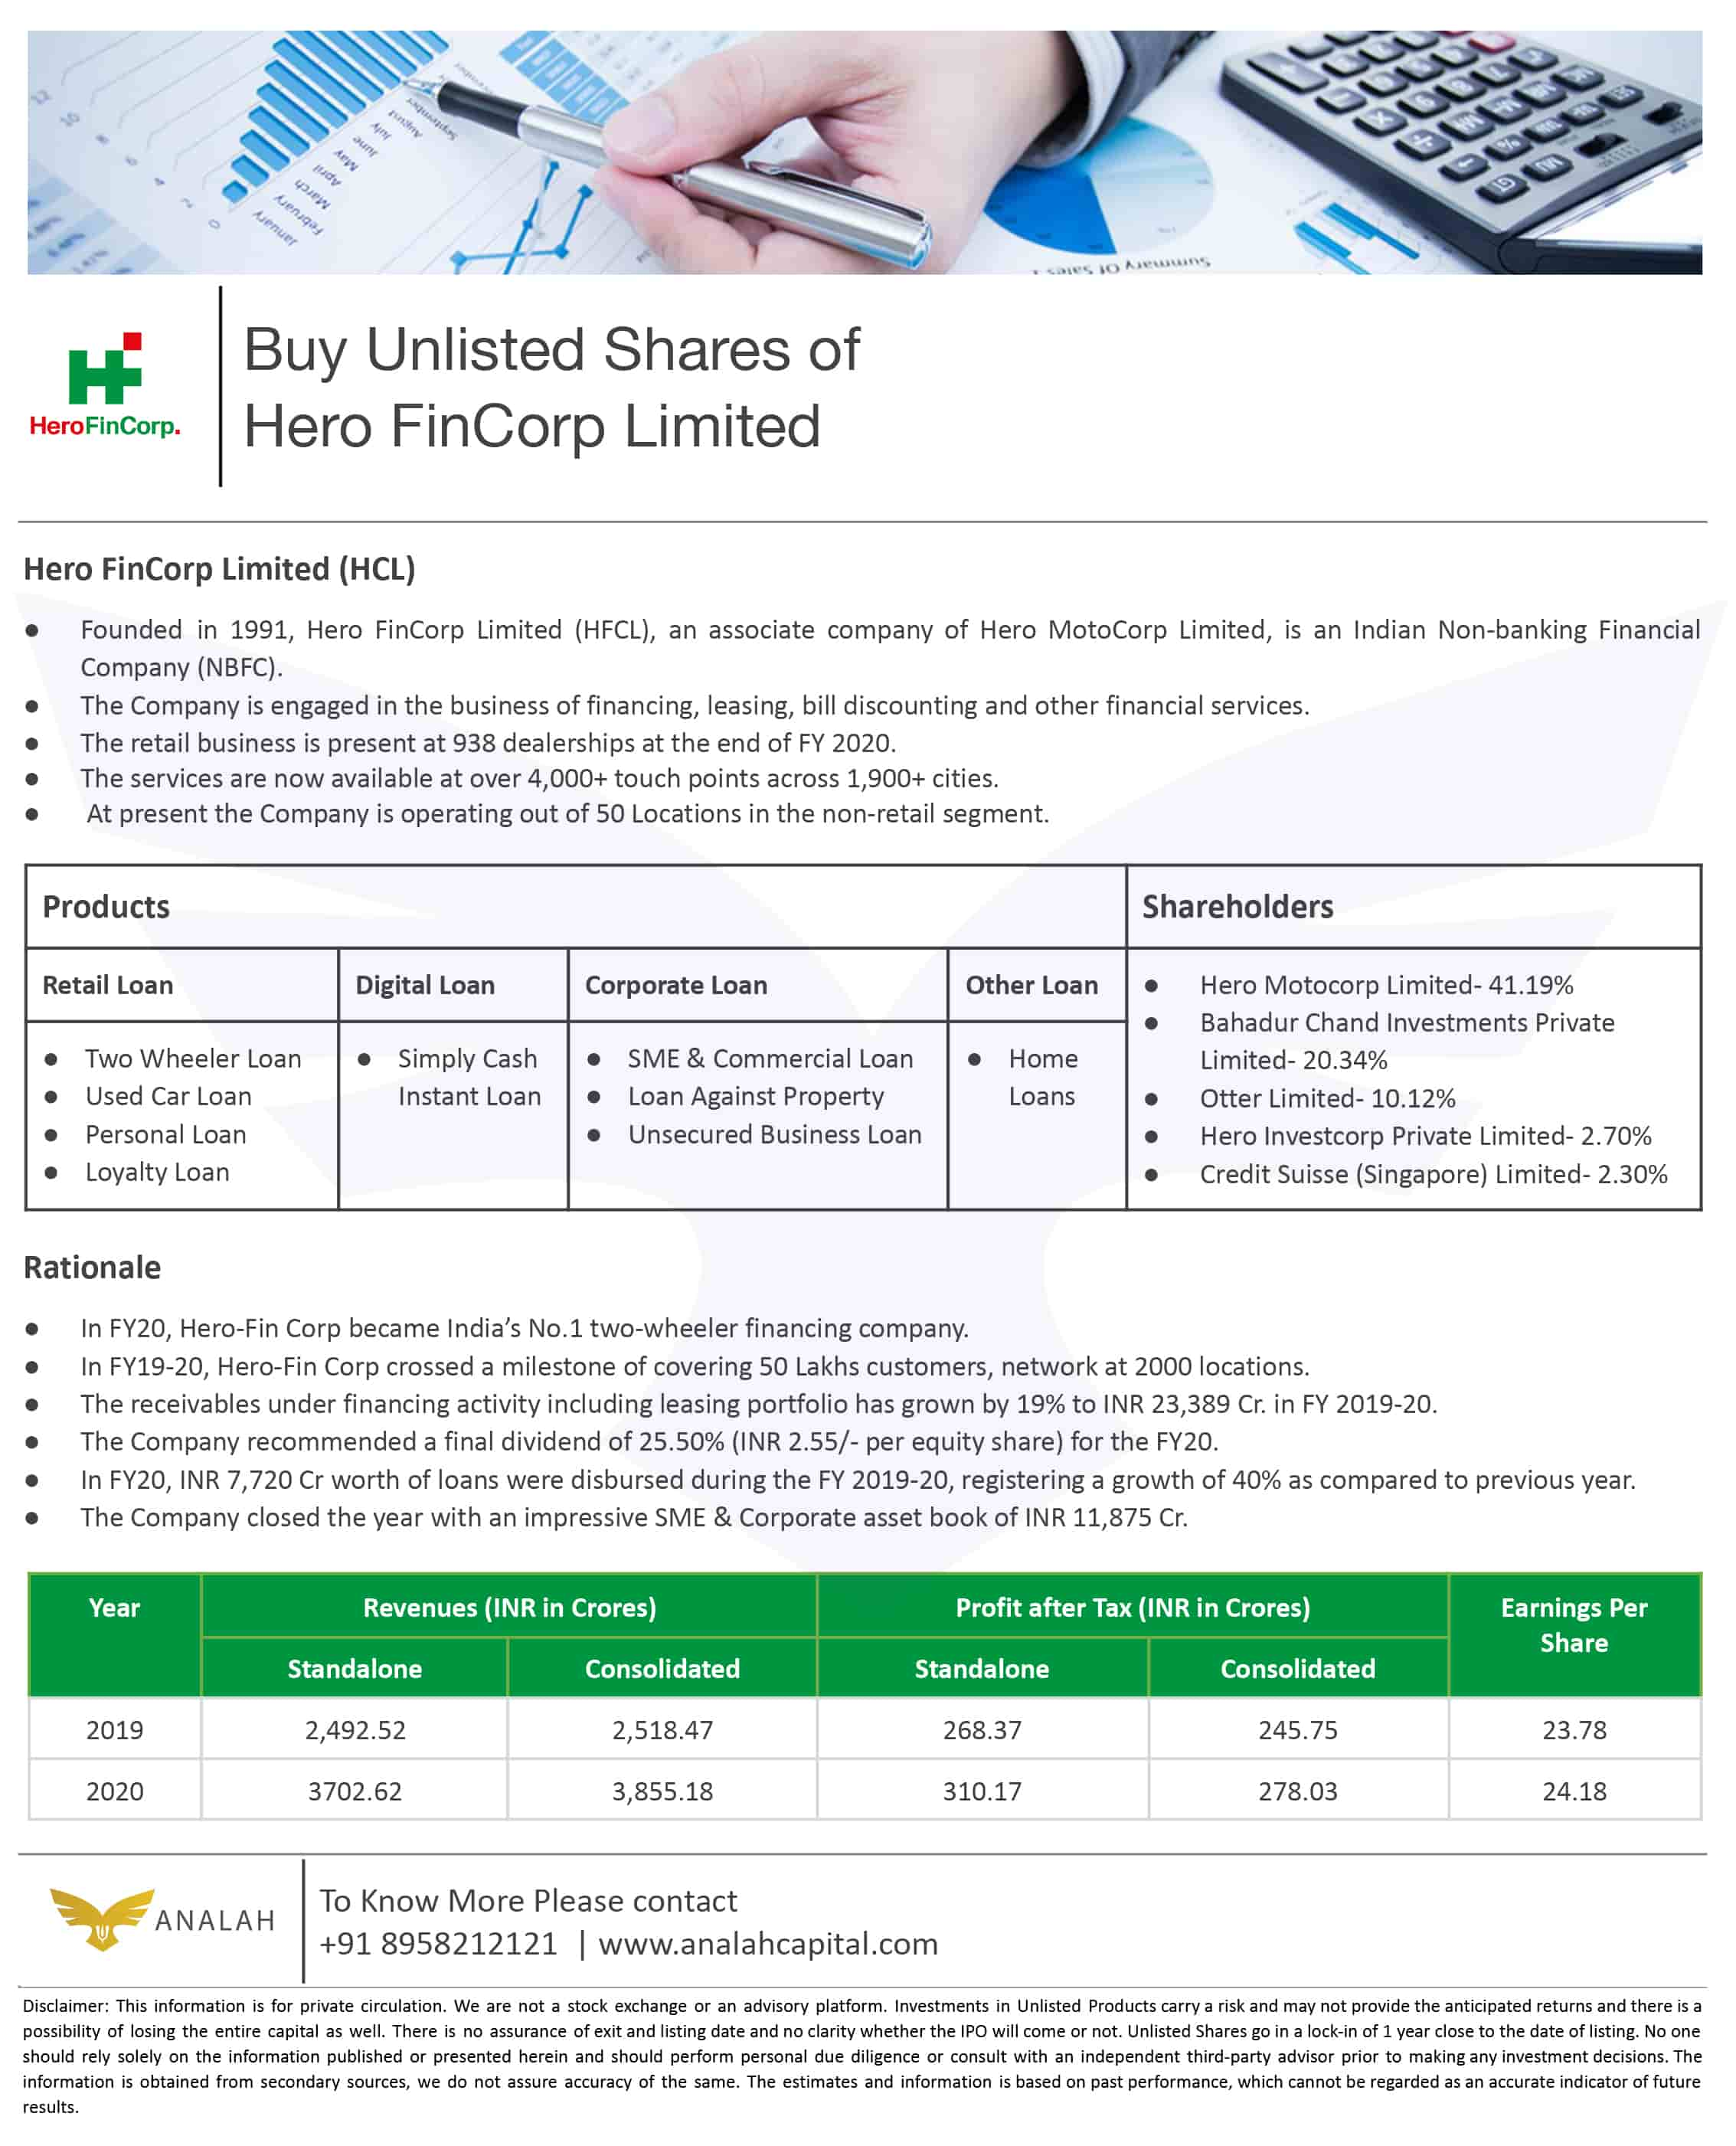 Hero FinCorp Unlisted Shares